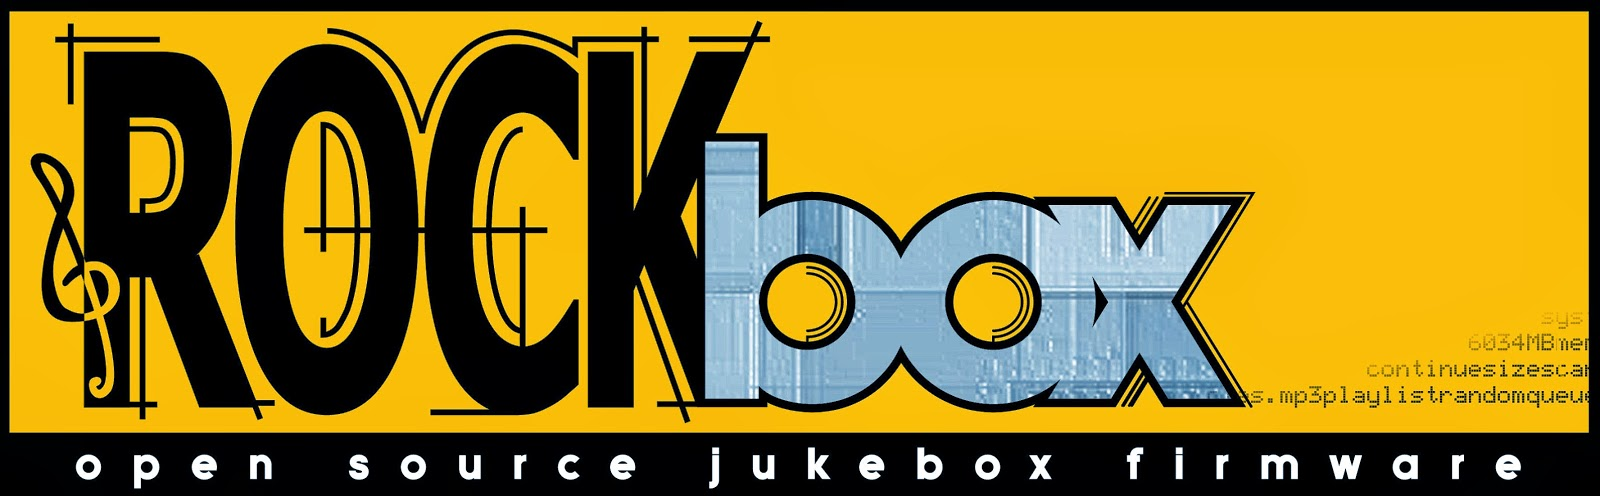 The Rockbox logo.